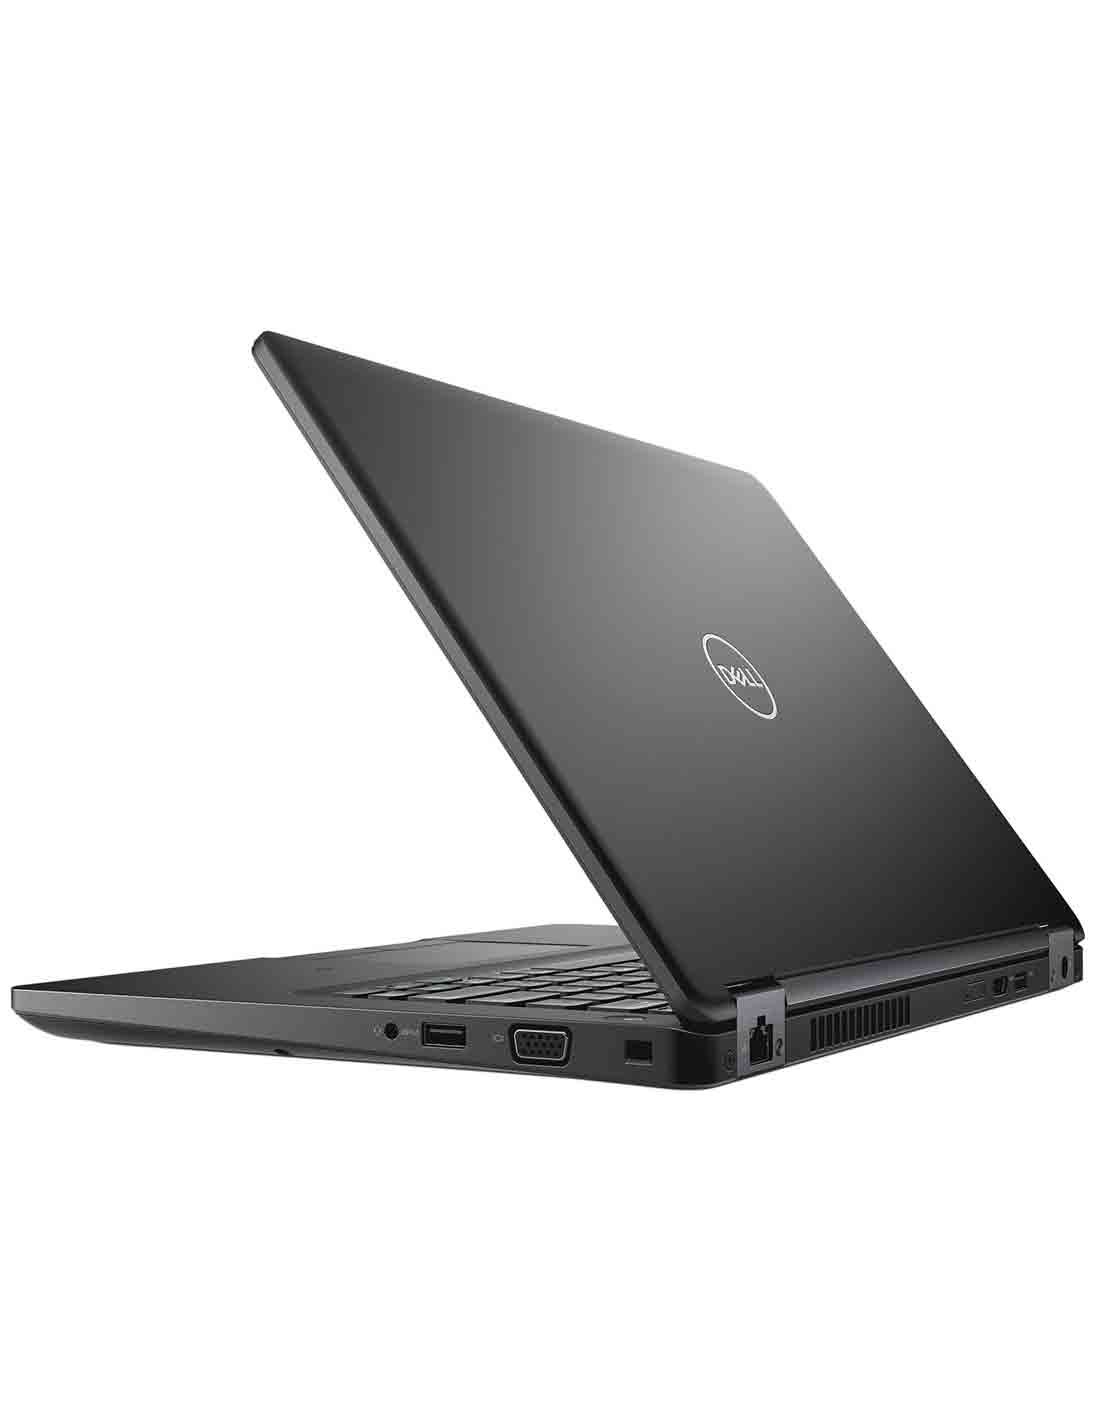 Dell Latitude 5580 8GB images and photos in Dubai computer store